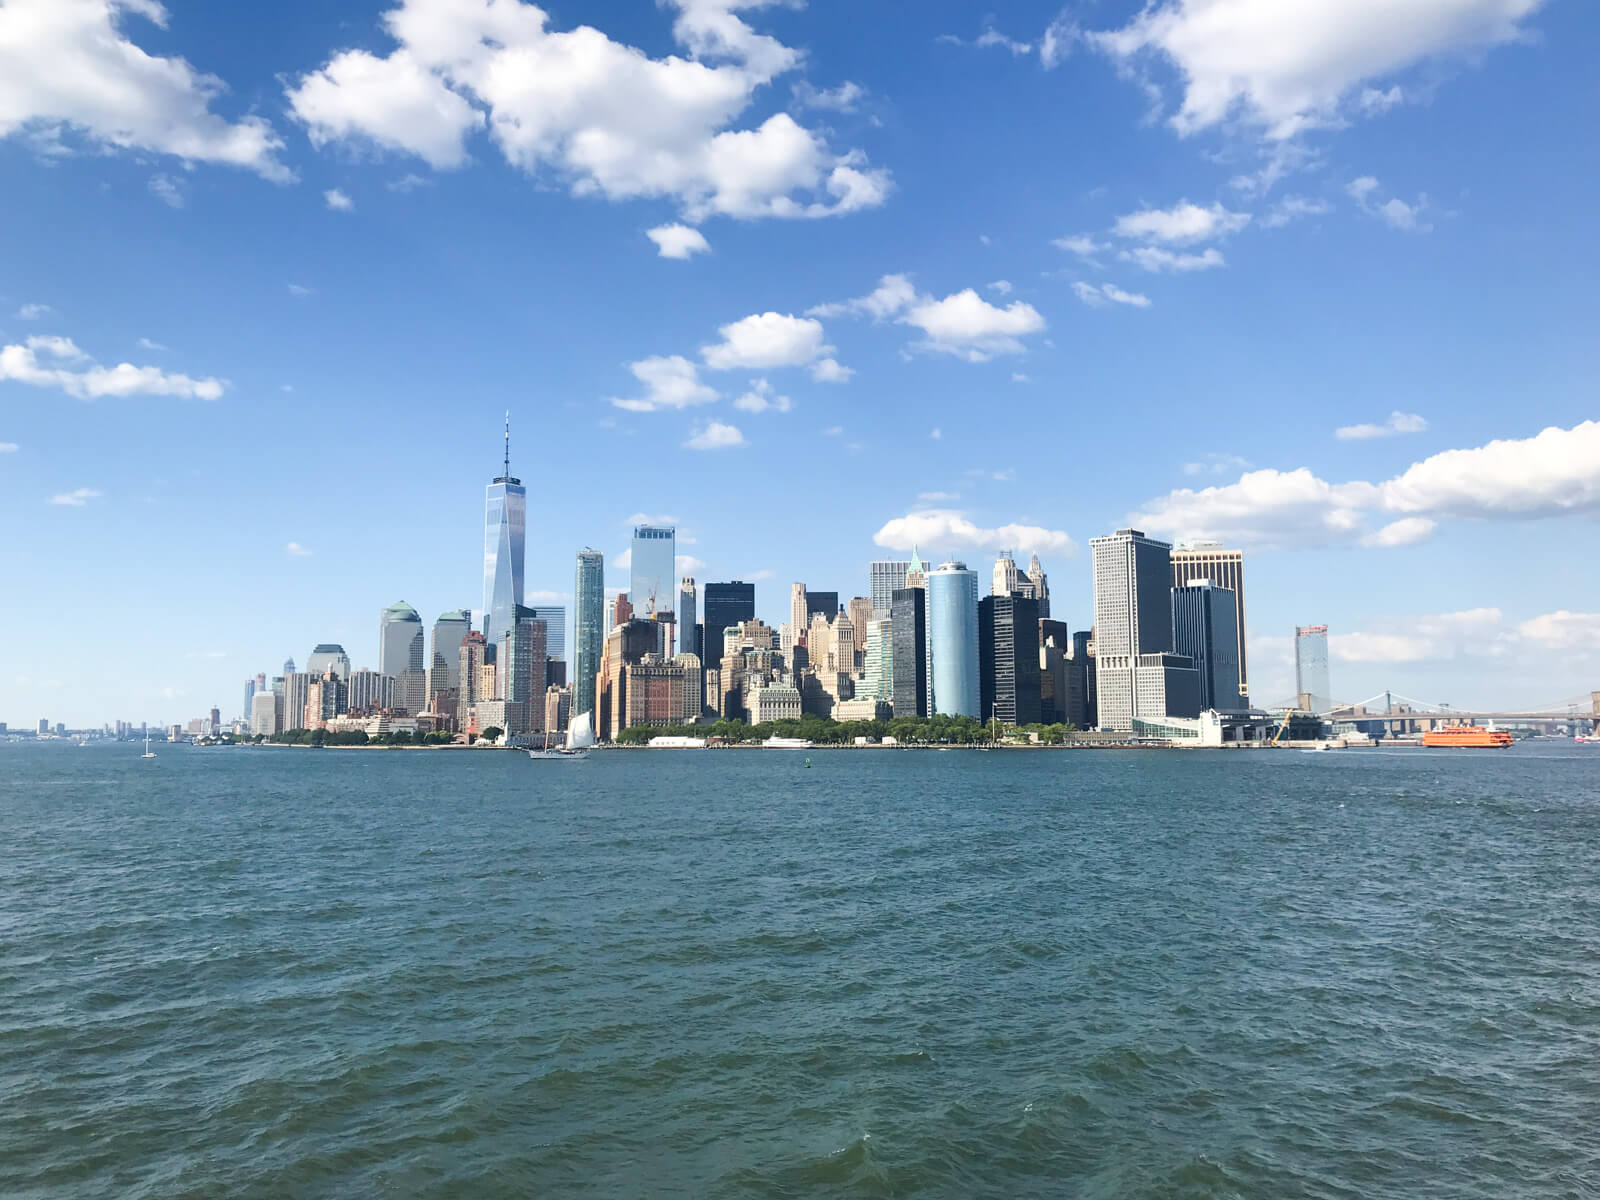 A view of the New York City skyline with the ocean in the foreground. The sky is blue with several clouds